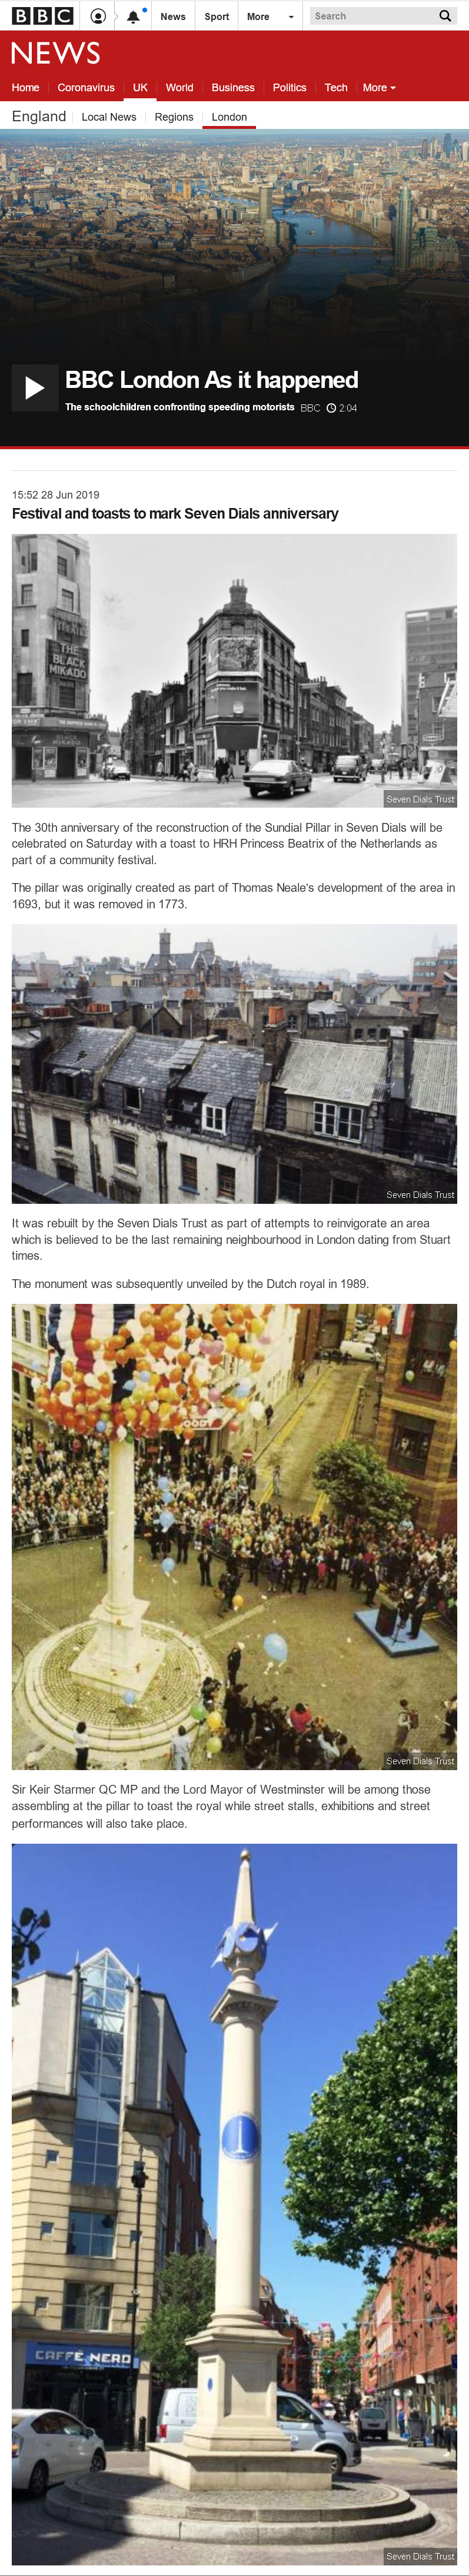 28 June 2019 – BBC London News: Festival and toasts to mark Seven Dials anniversary.